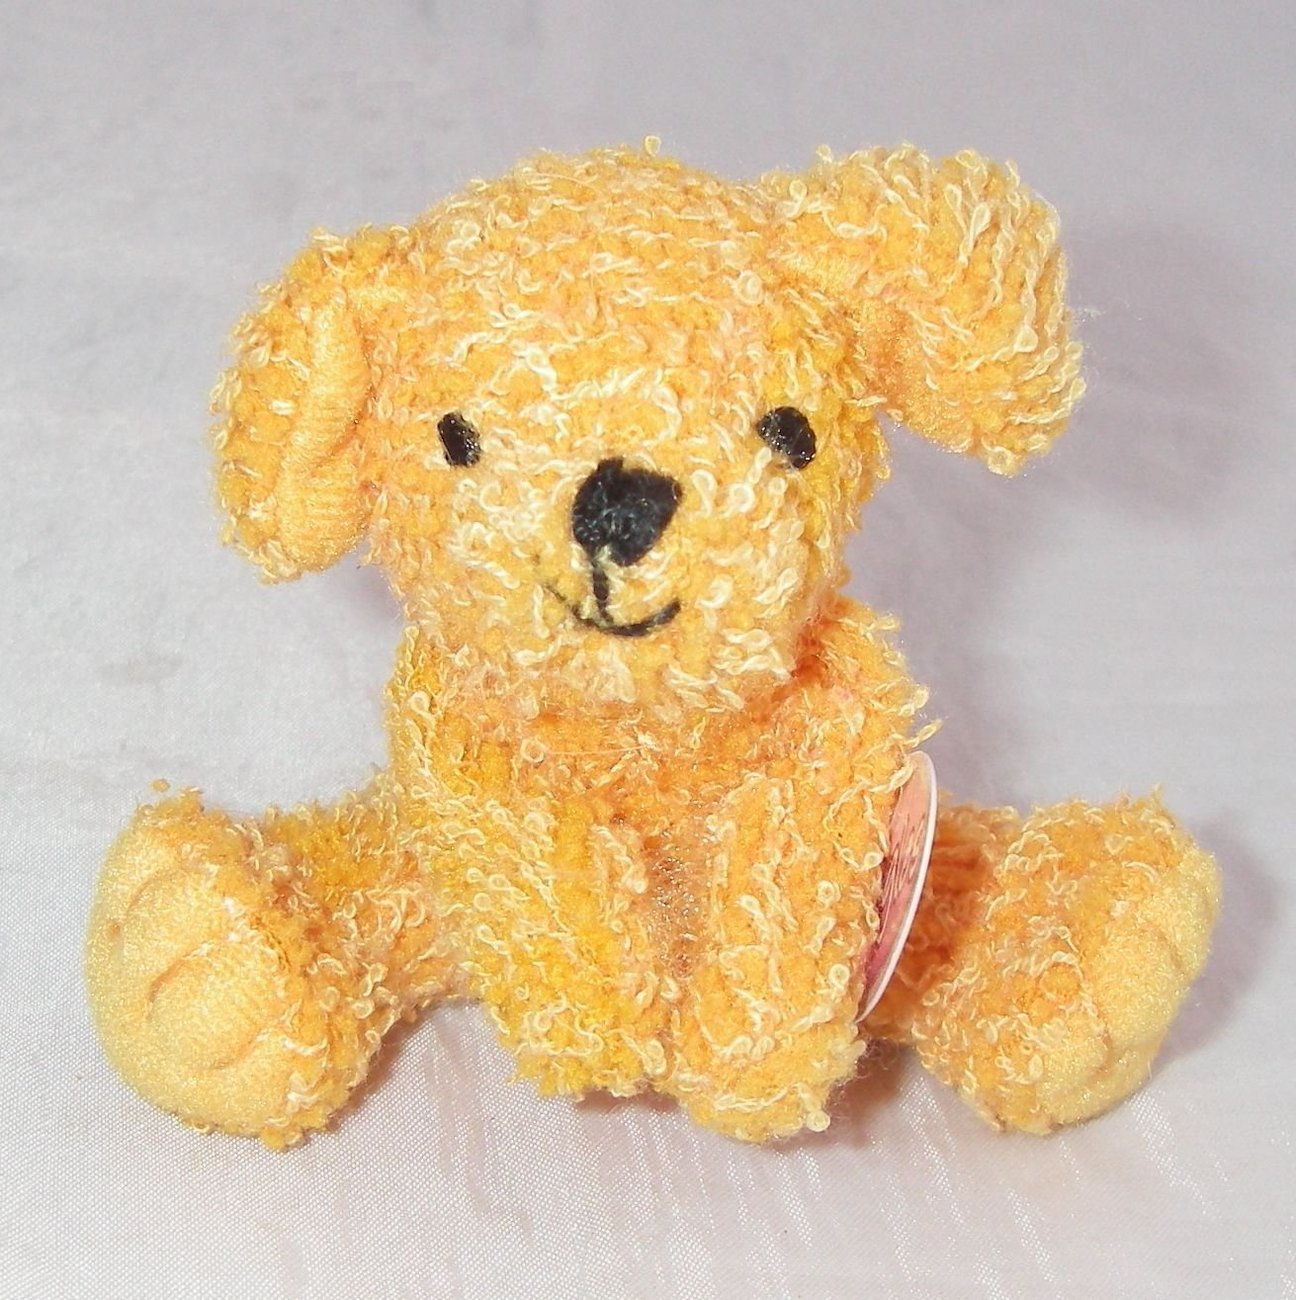 Buy Blip Toys Toys - Whimzy Pets Blip Toys 2010 Plush Orange Shaggles Dog Velcro Mini Terry 2.5""